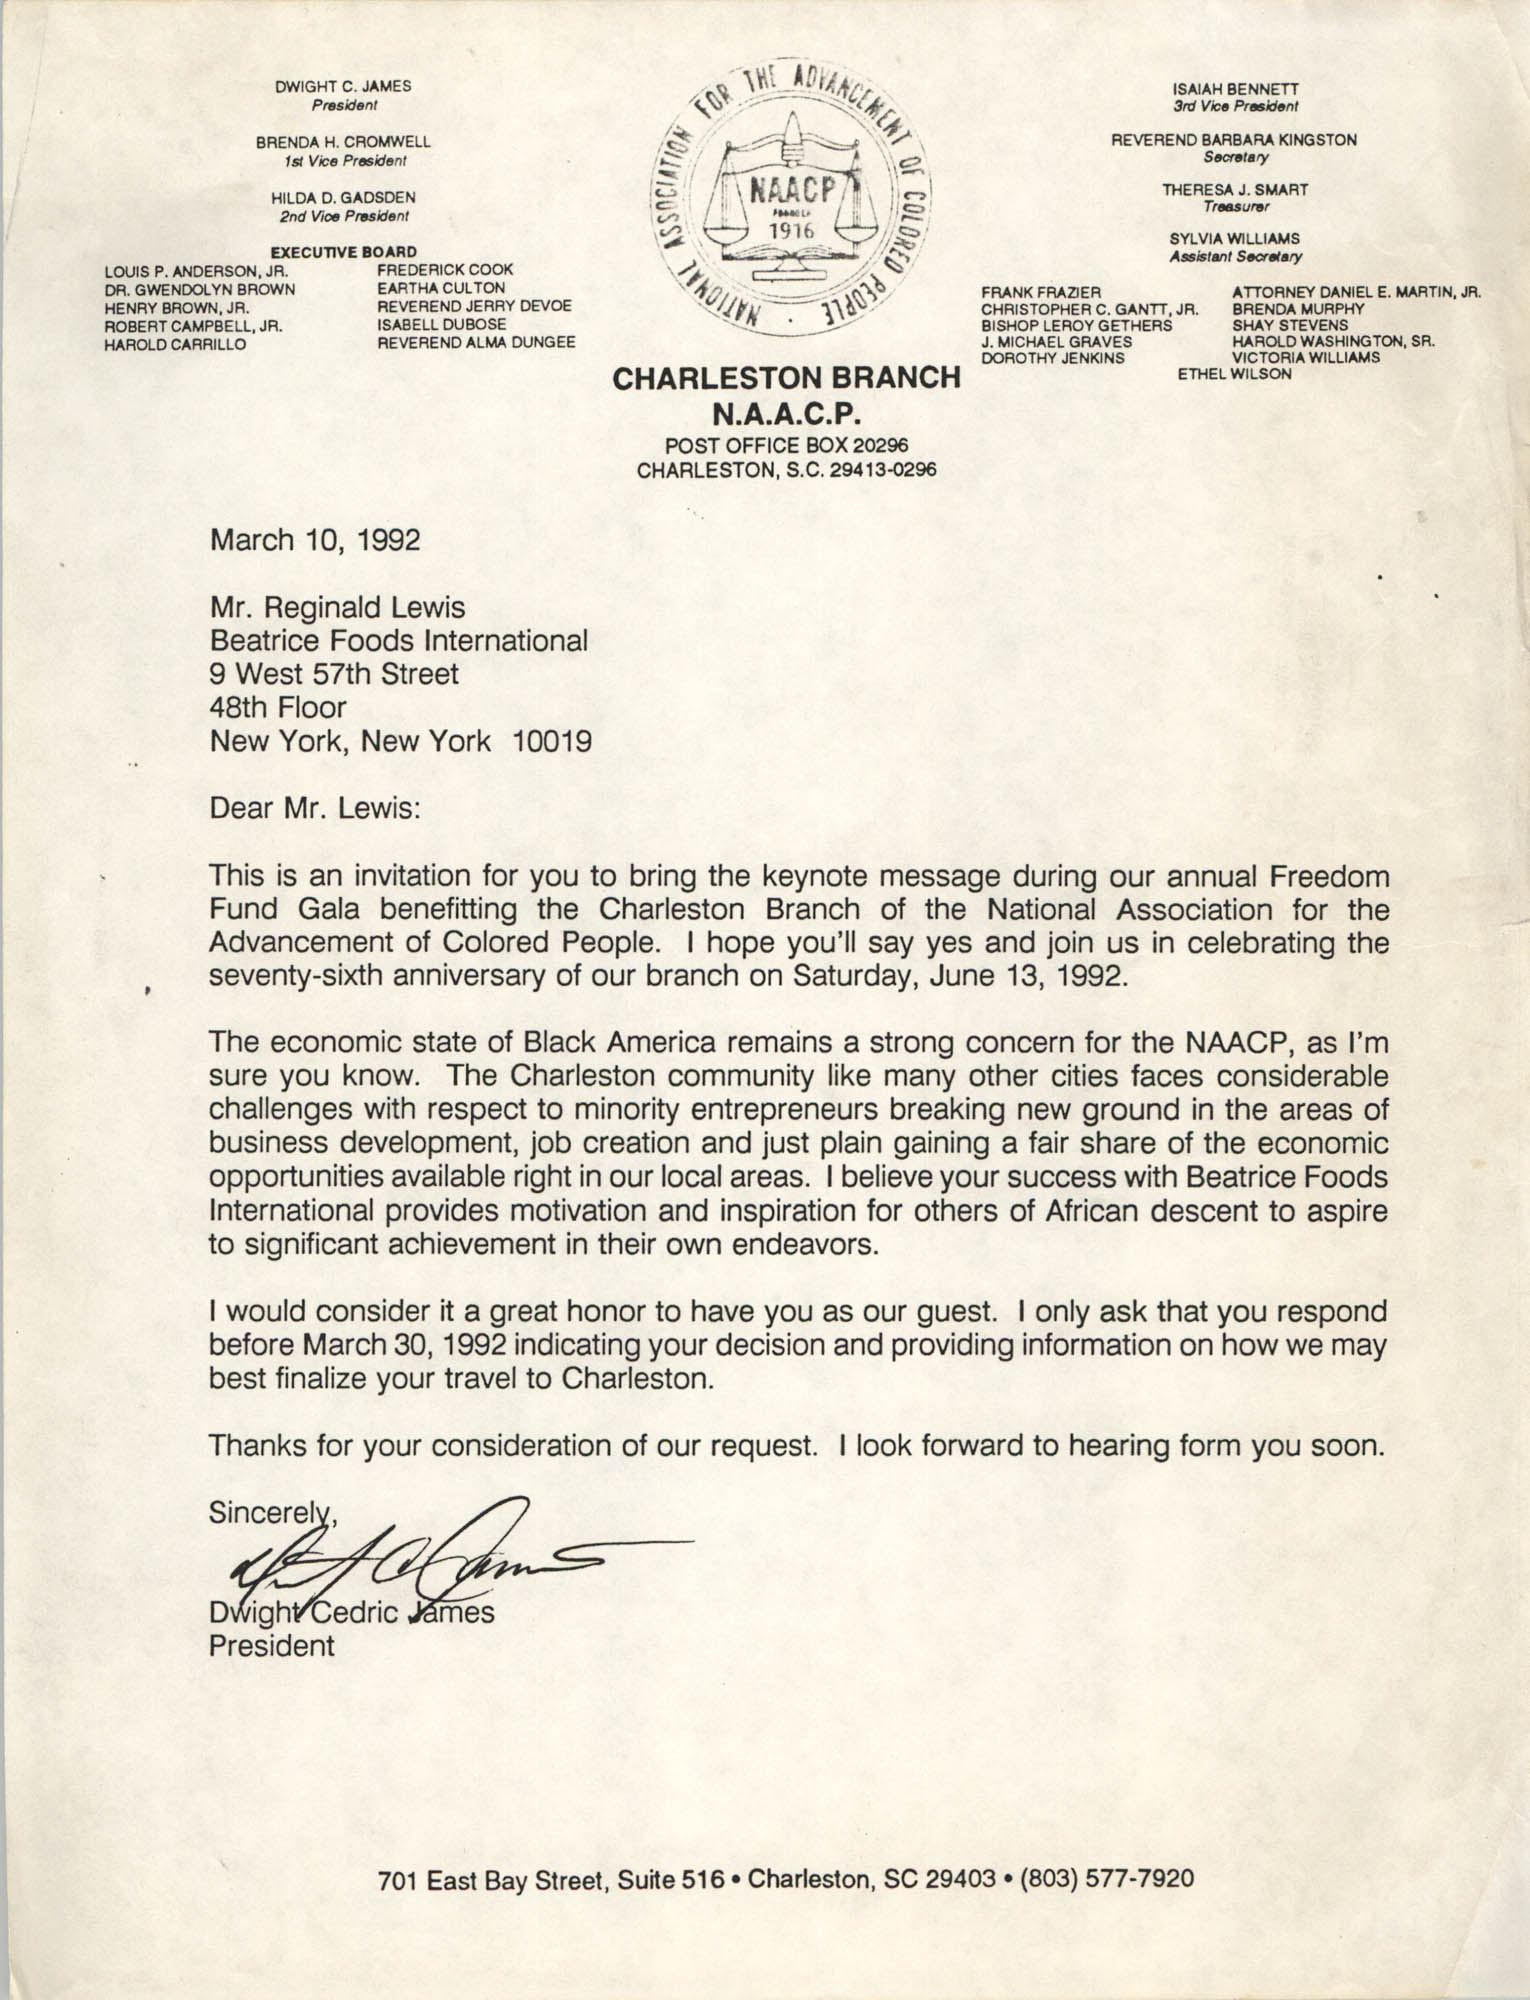 Letter from Dwight Cedric James to Reginald Lewis, March 10, 1992